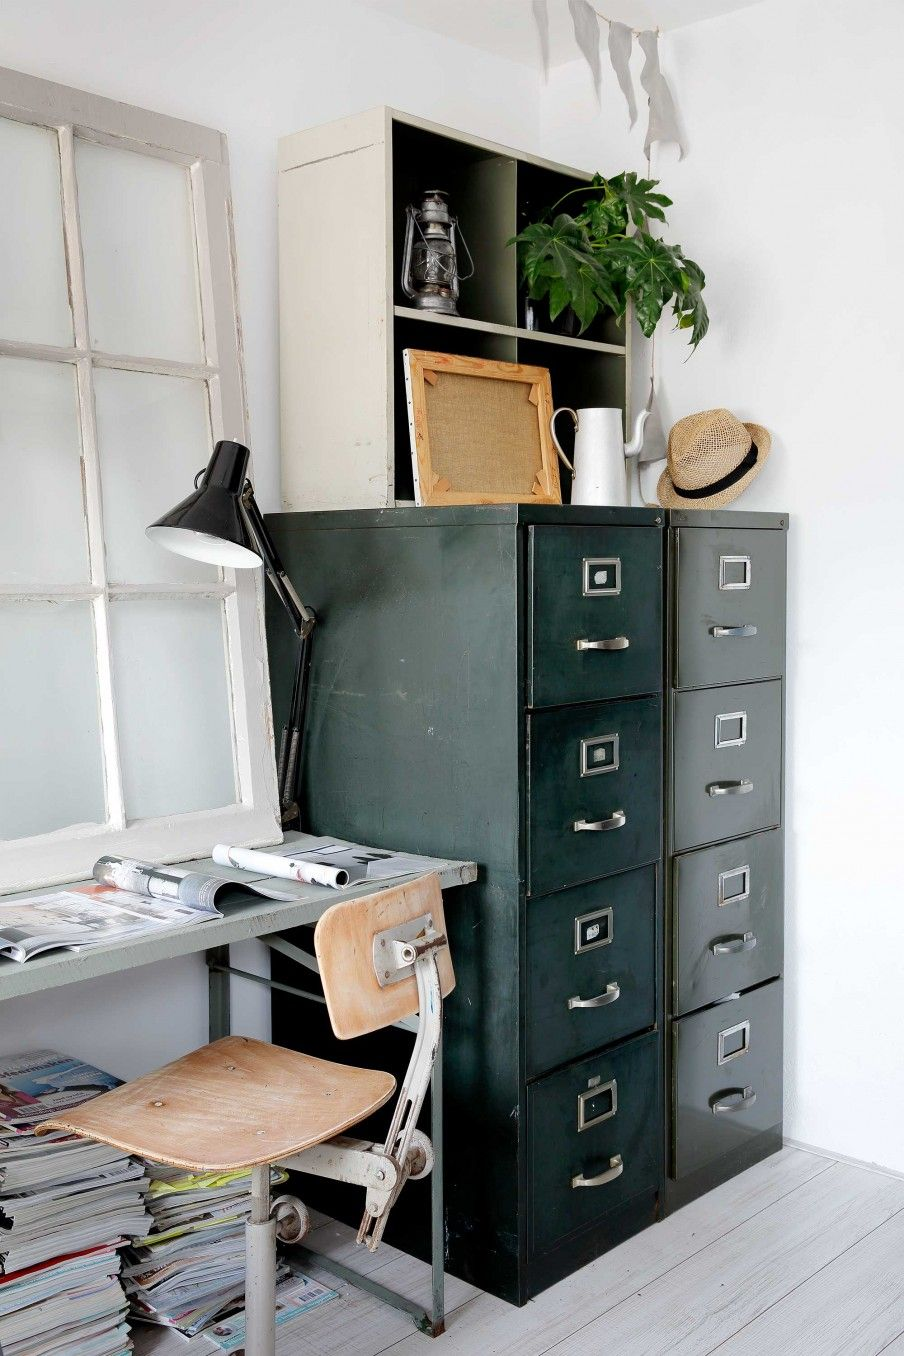 Vintage industrial home in The Netherlands | photos by Peggy Janssen Follow Gravity Home: Blog - Instagram - Pinterest - Facebook - Shop